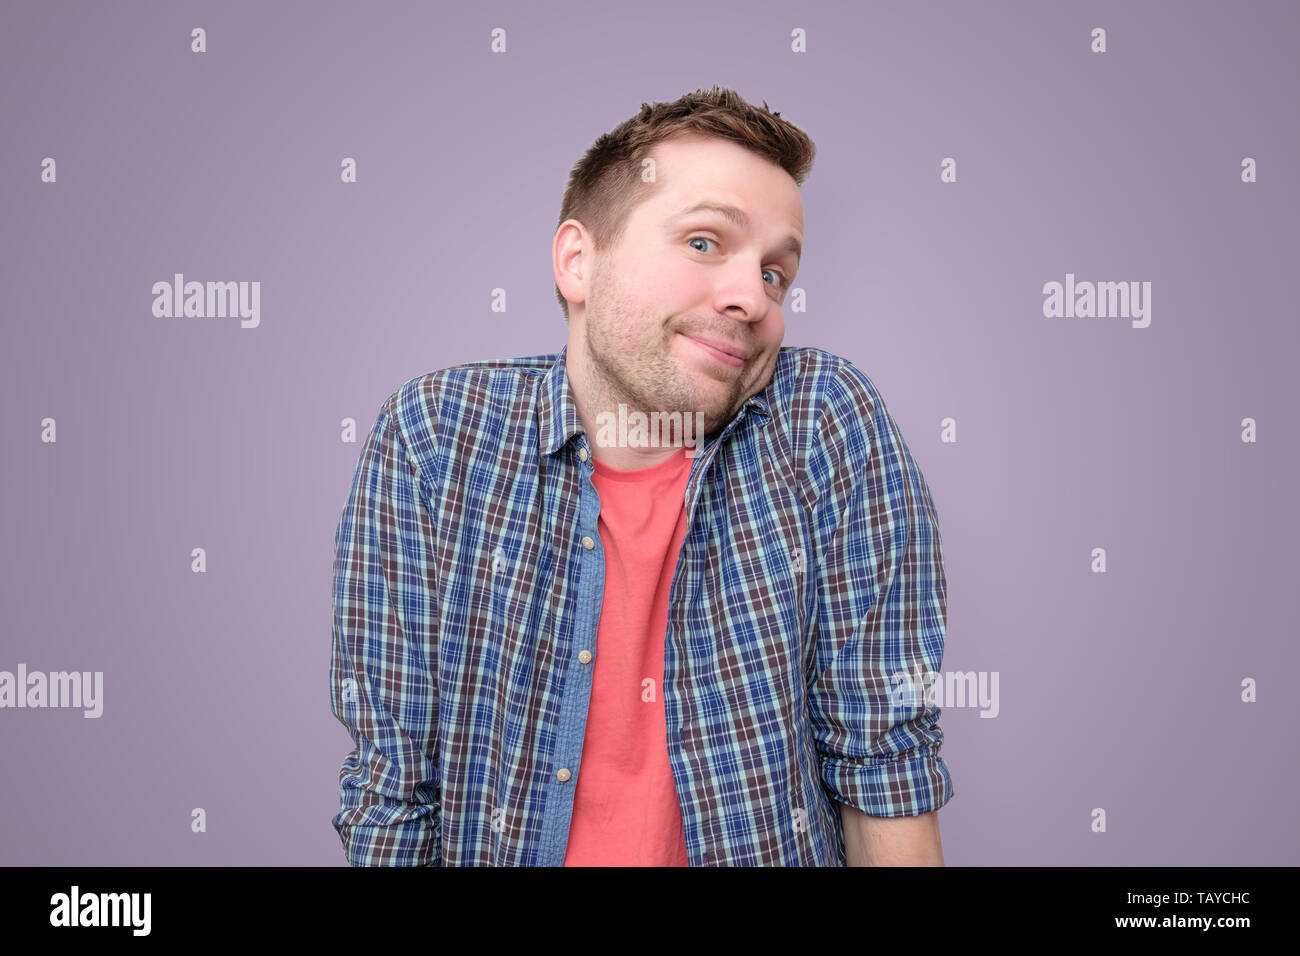 guy showing I have no idea gesture, shrugging shoulders and raising hands - Stock Image